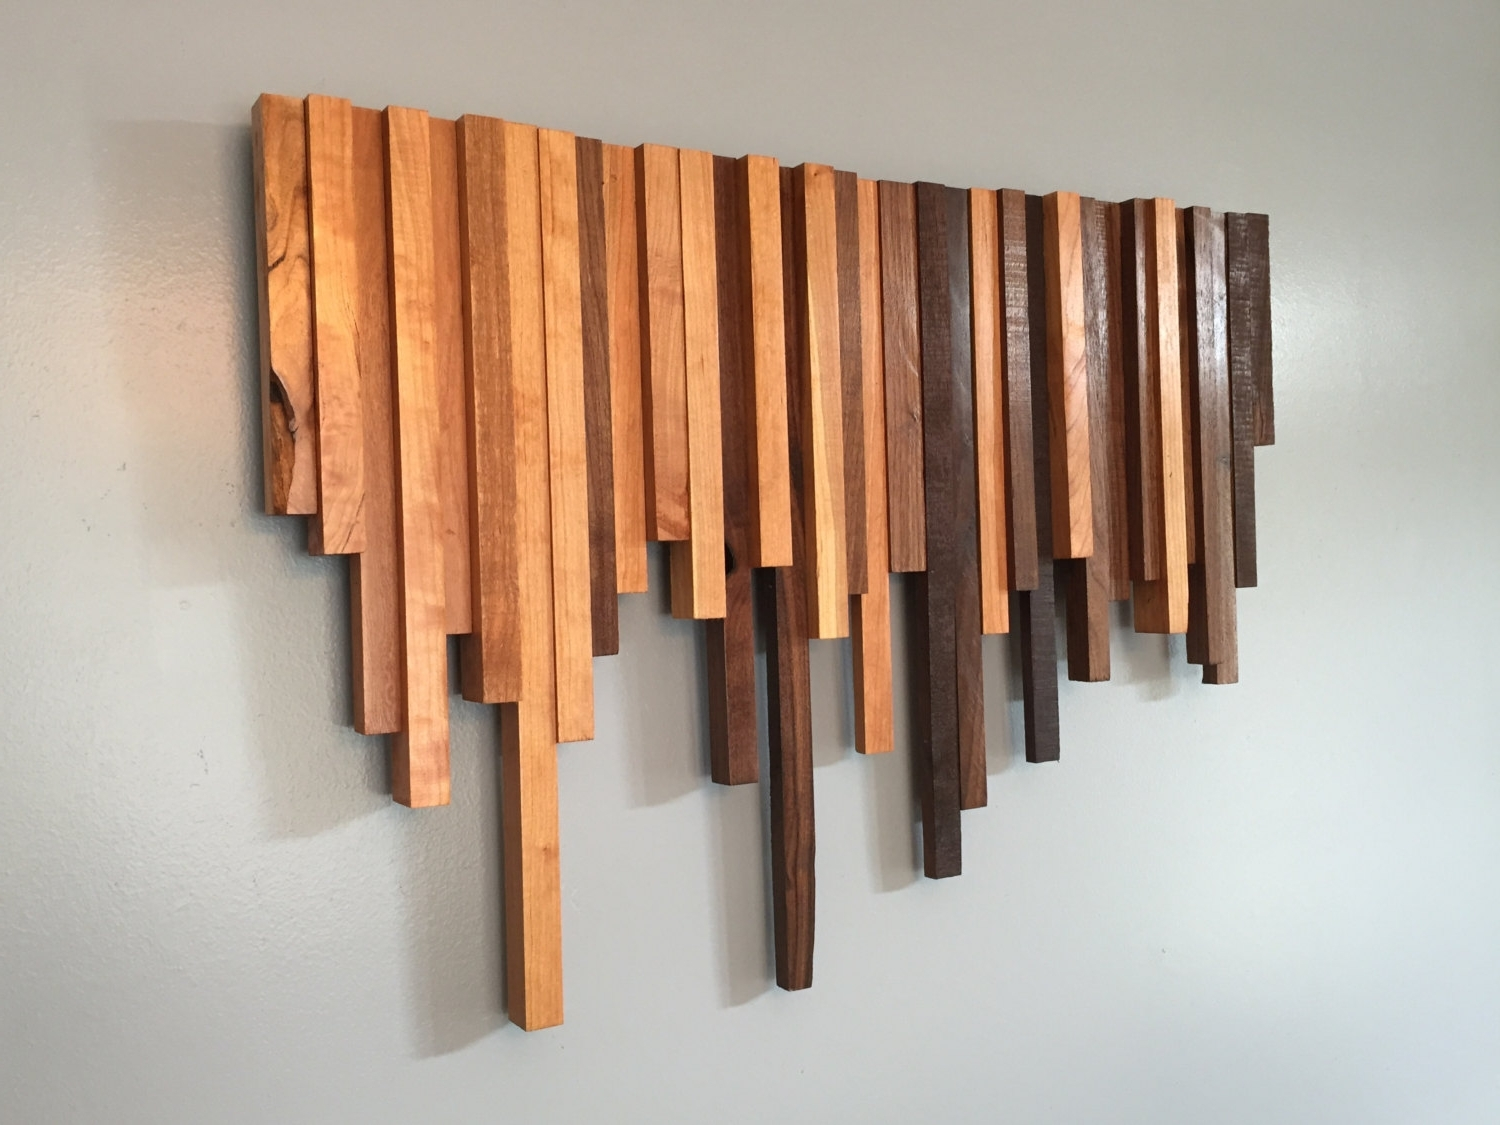 20 Wood Wall Art Design Ideas With Different Styles • Recous Throughout Trendy Wall Art On Wood (View 1 of 15)